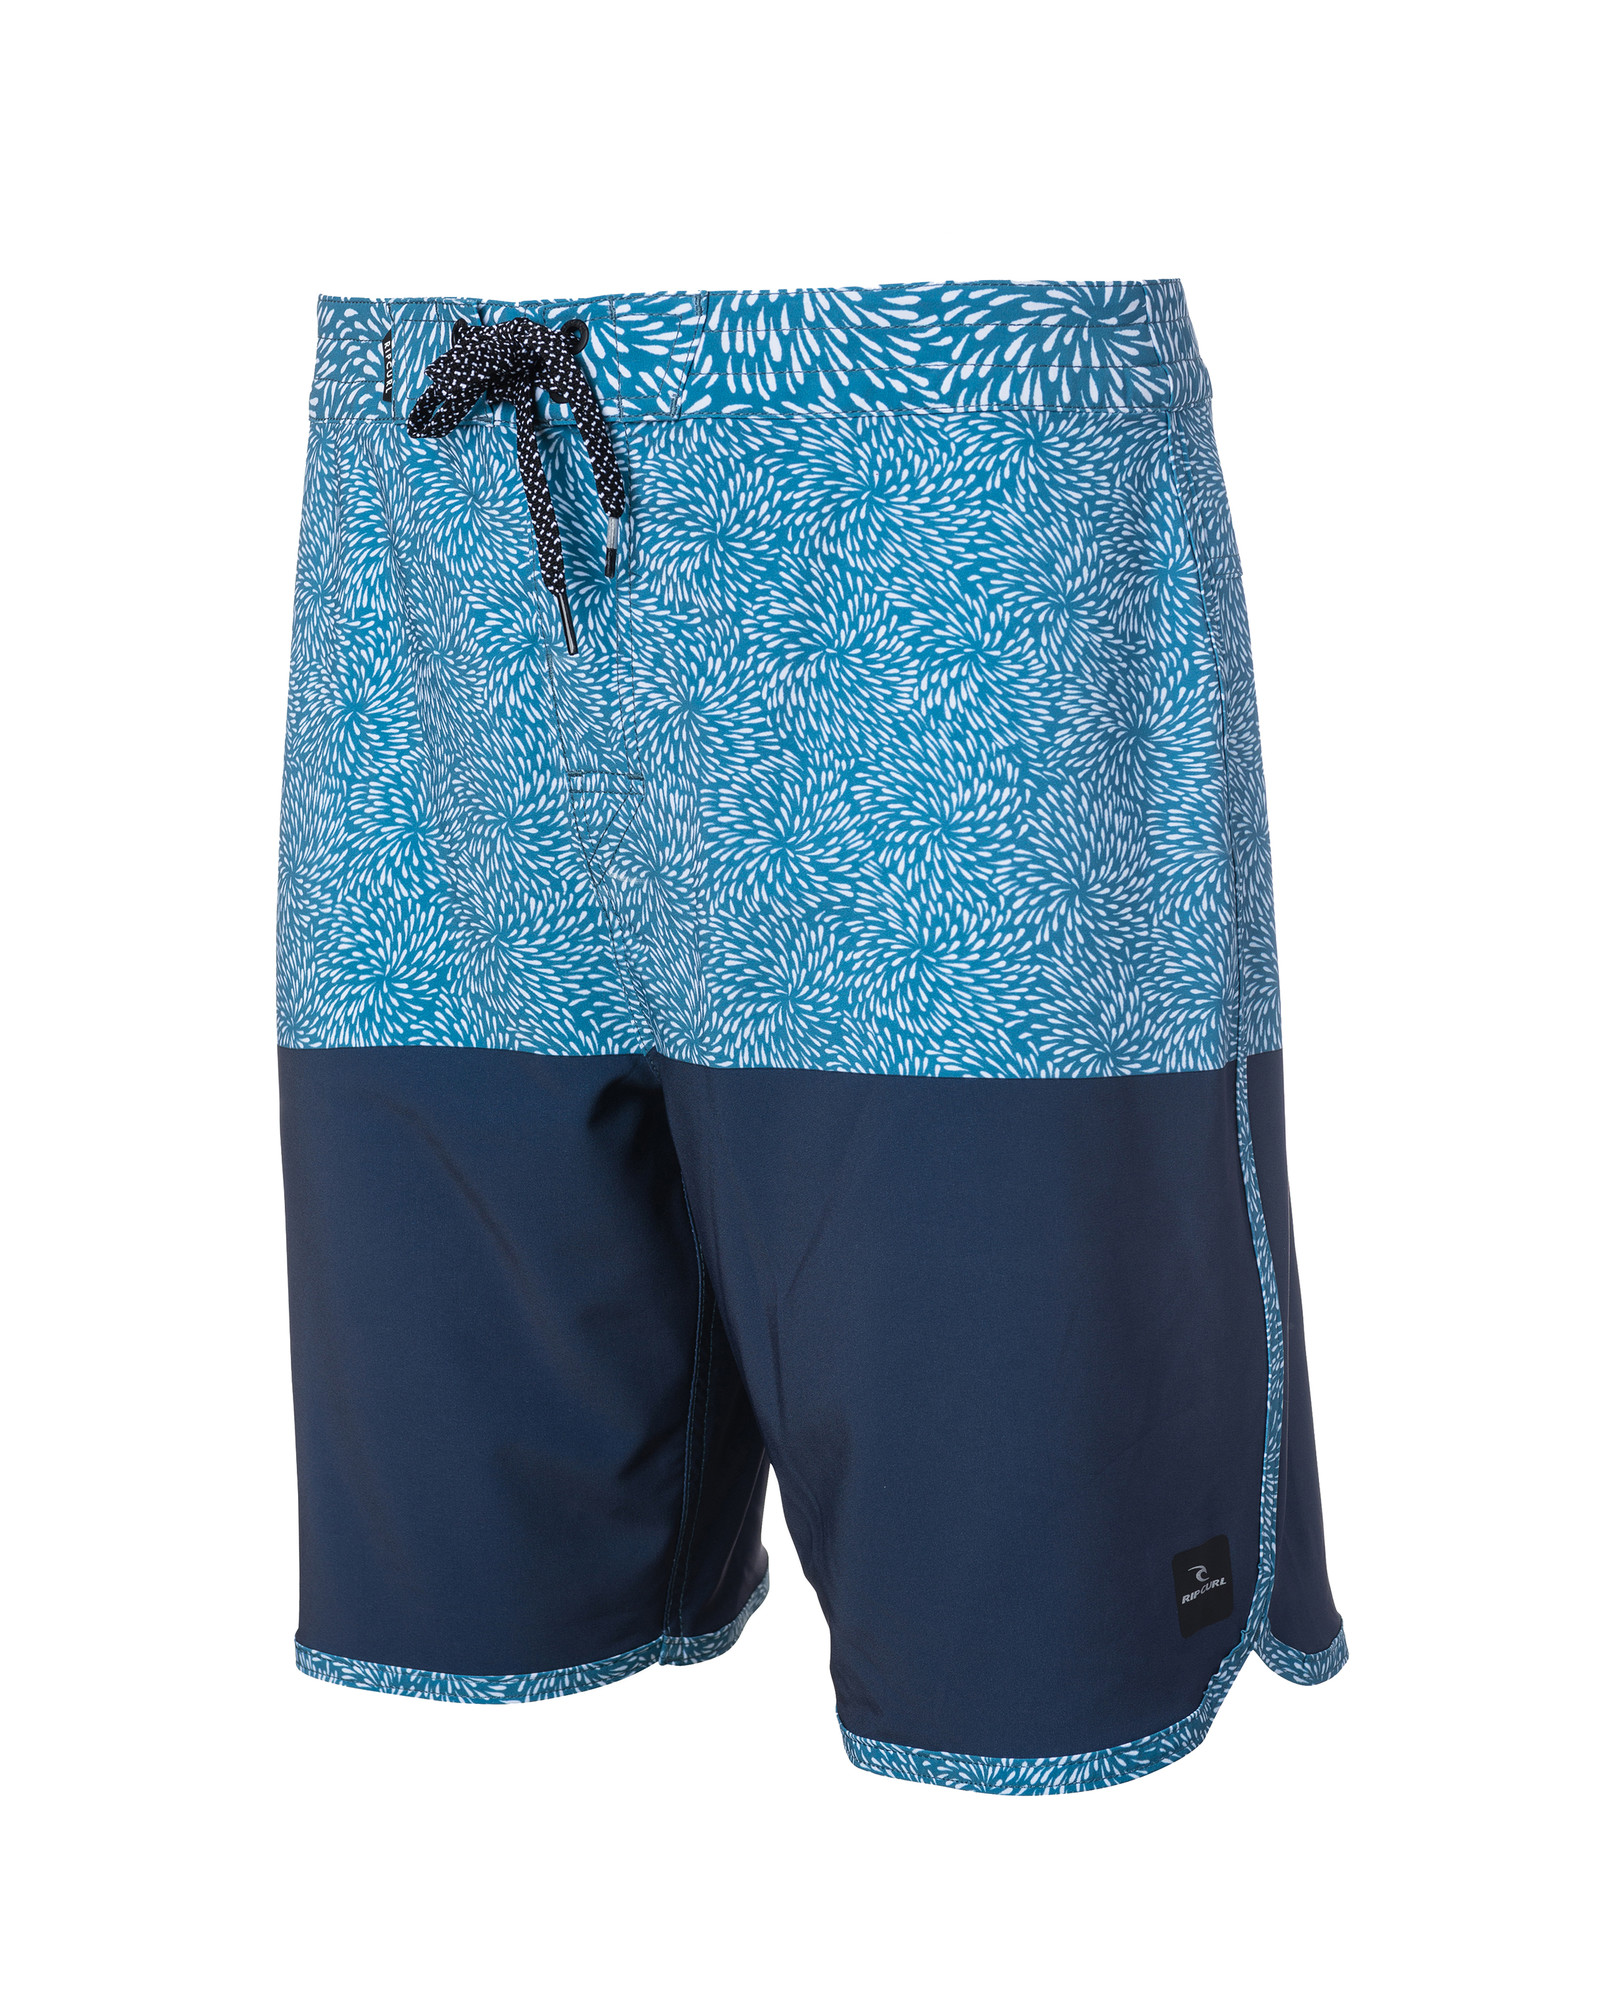 4c2a88bd21 MIRAGE CONNER SPIN OUT 19 Boardshort 2019 navy | Warehouse One